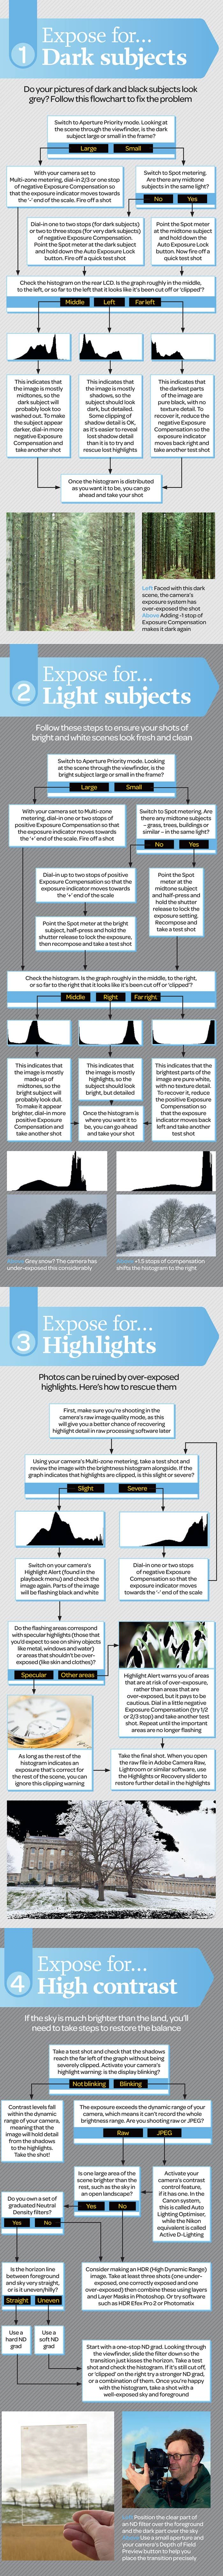 Photography Basics: the No. 1 cheat sheet for metering and exposure #Infographic # photography